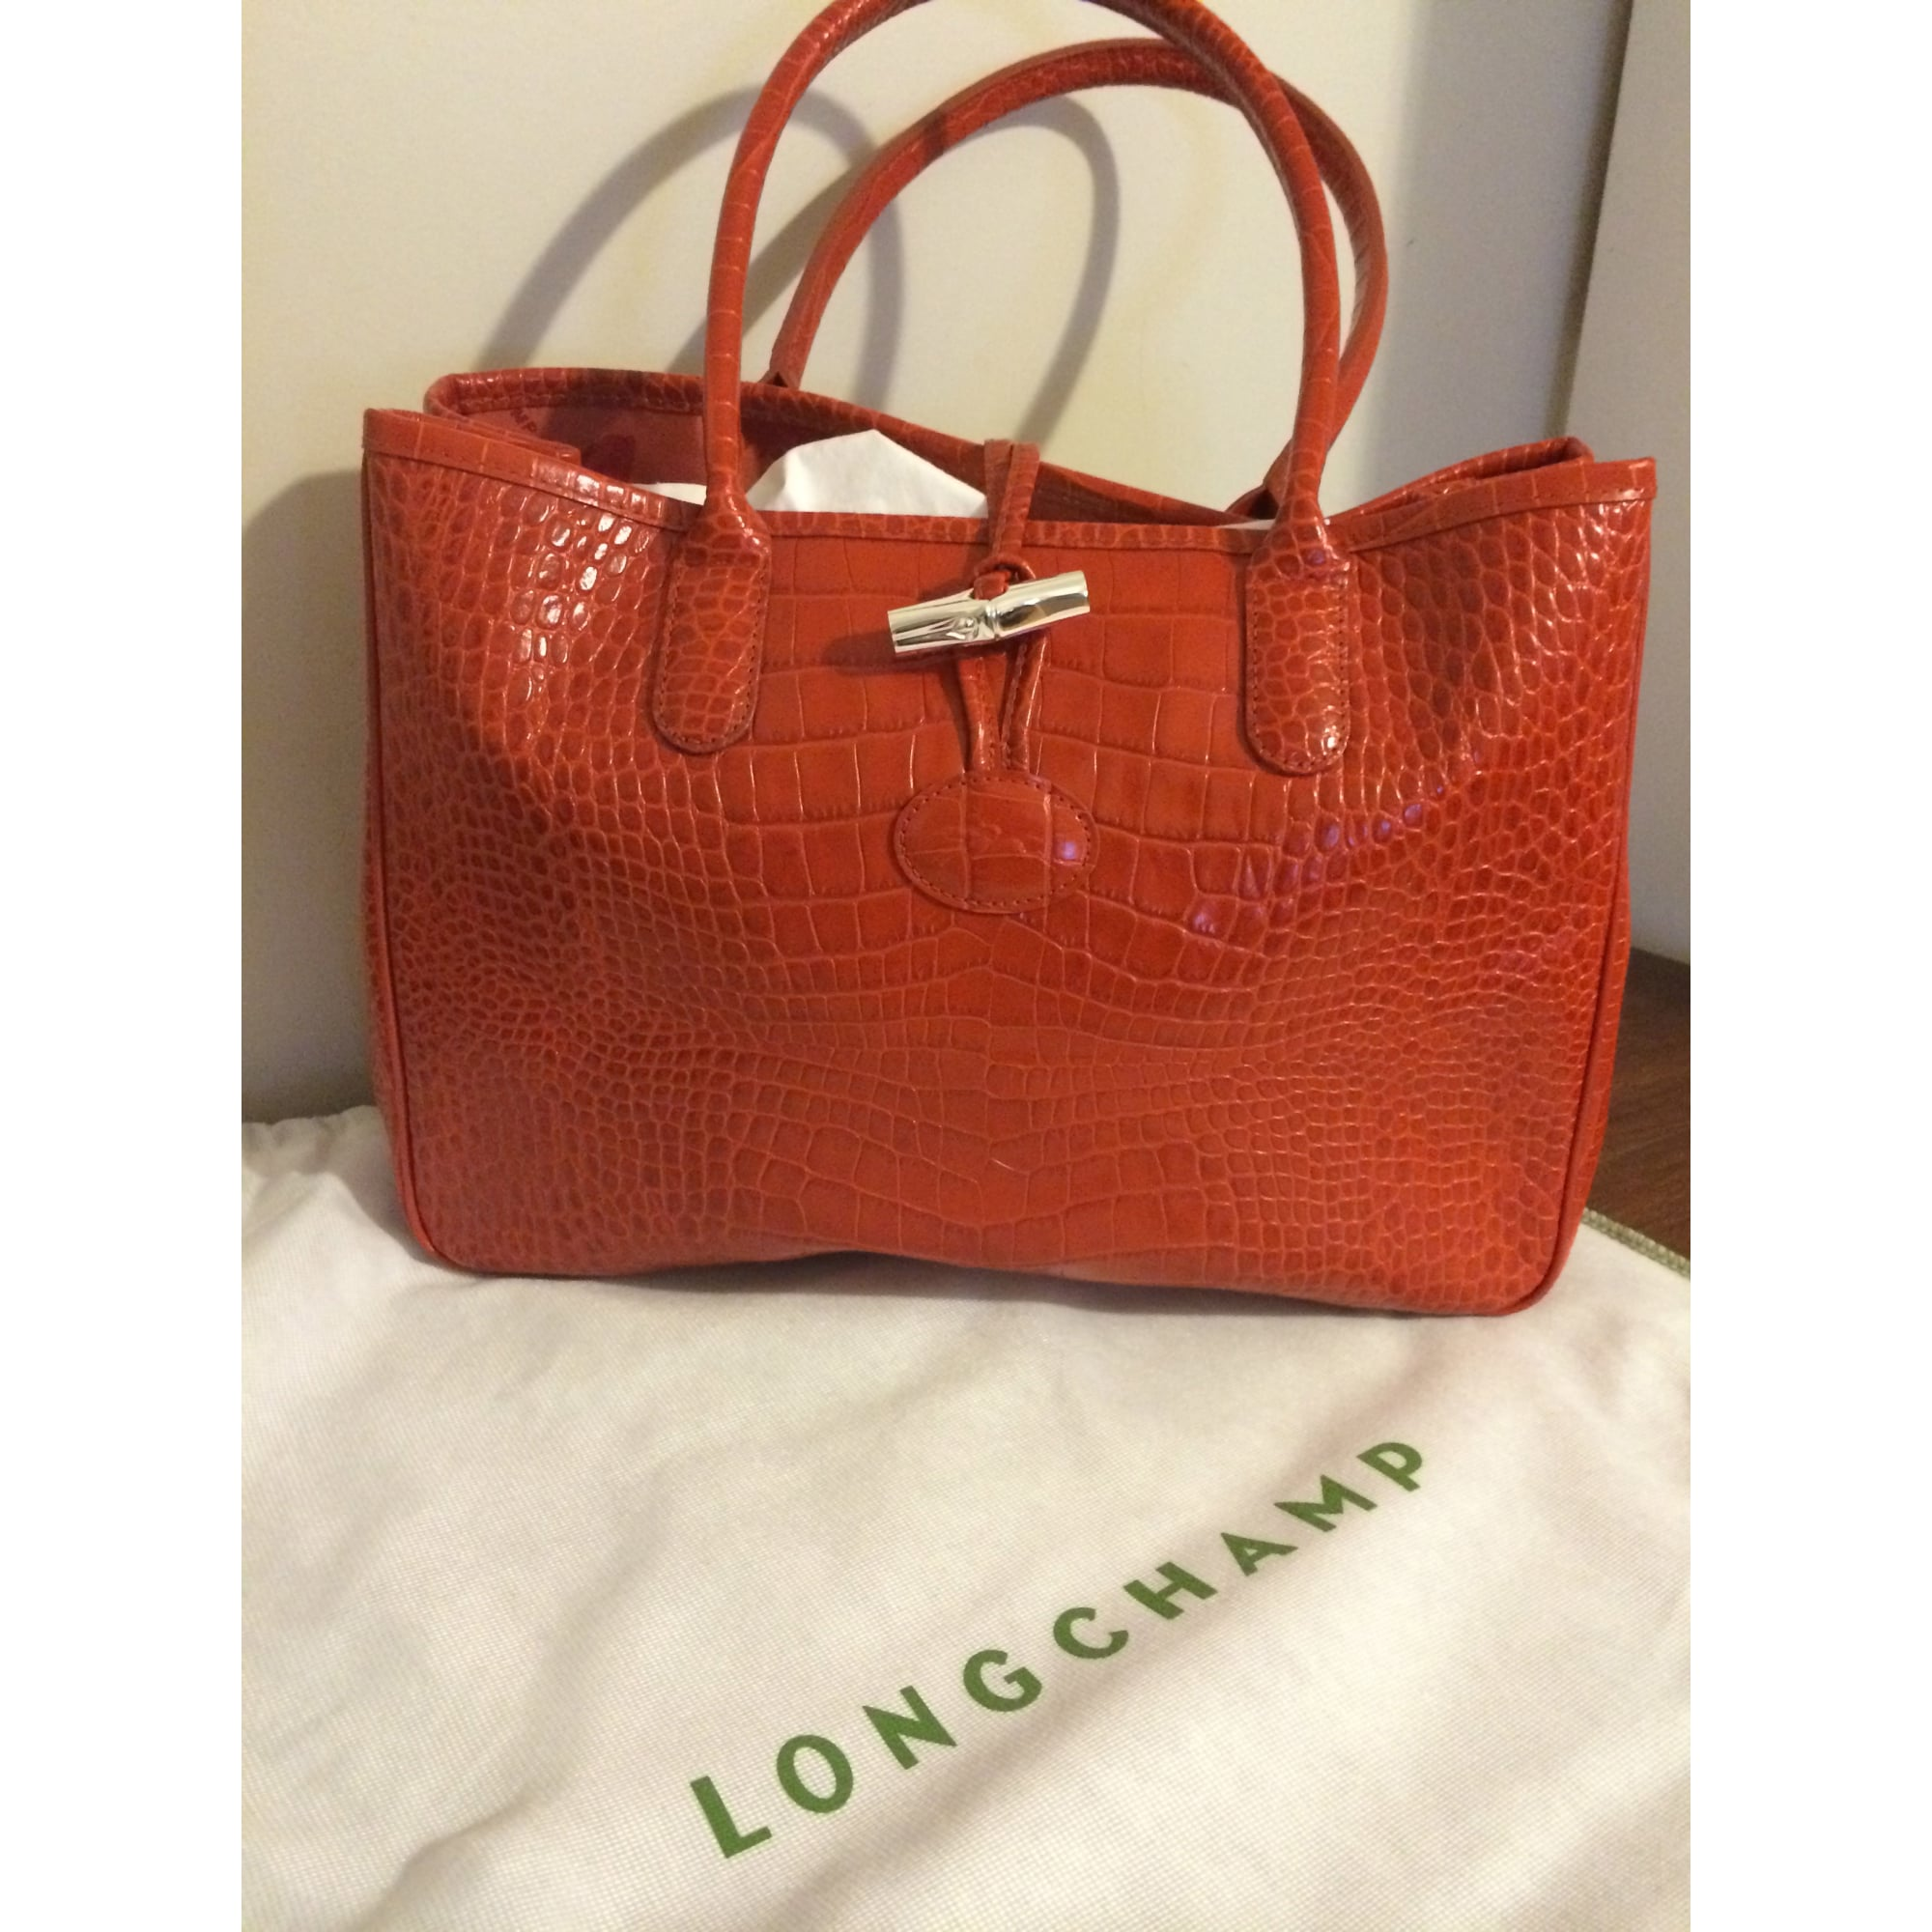 460e258867ff Sac à main en cuir LONGCHAMP orange vendu par Mathildeff - 2327119